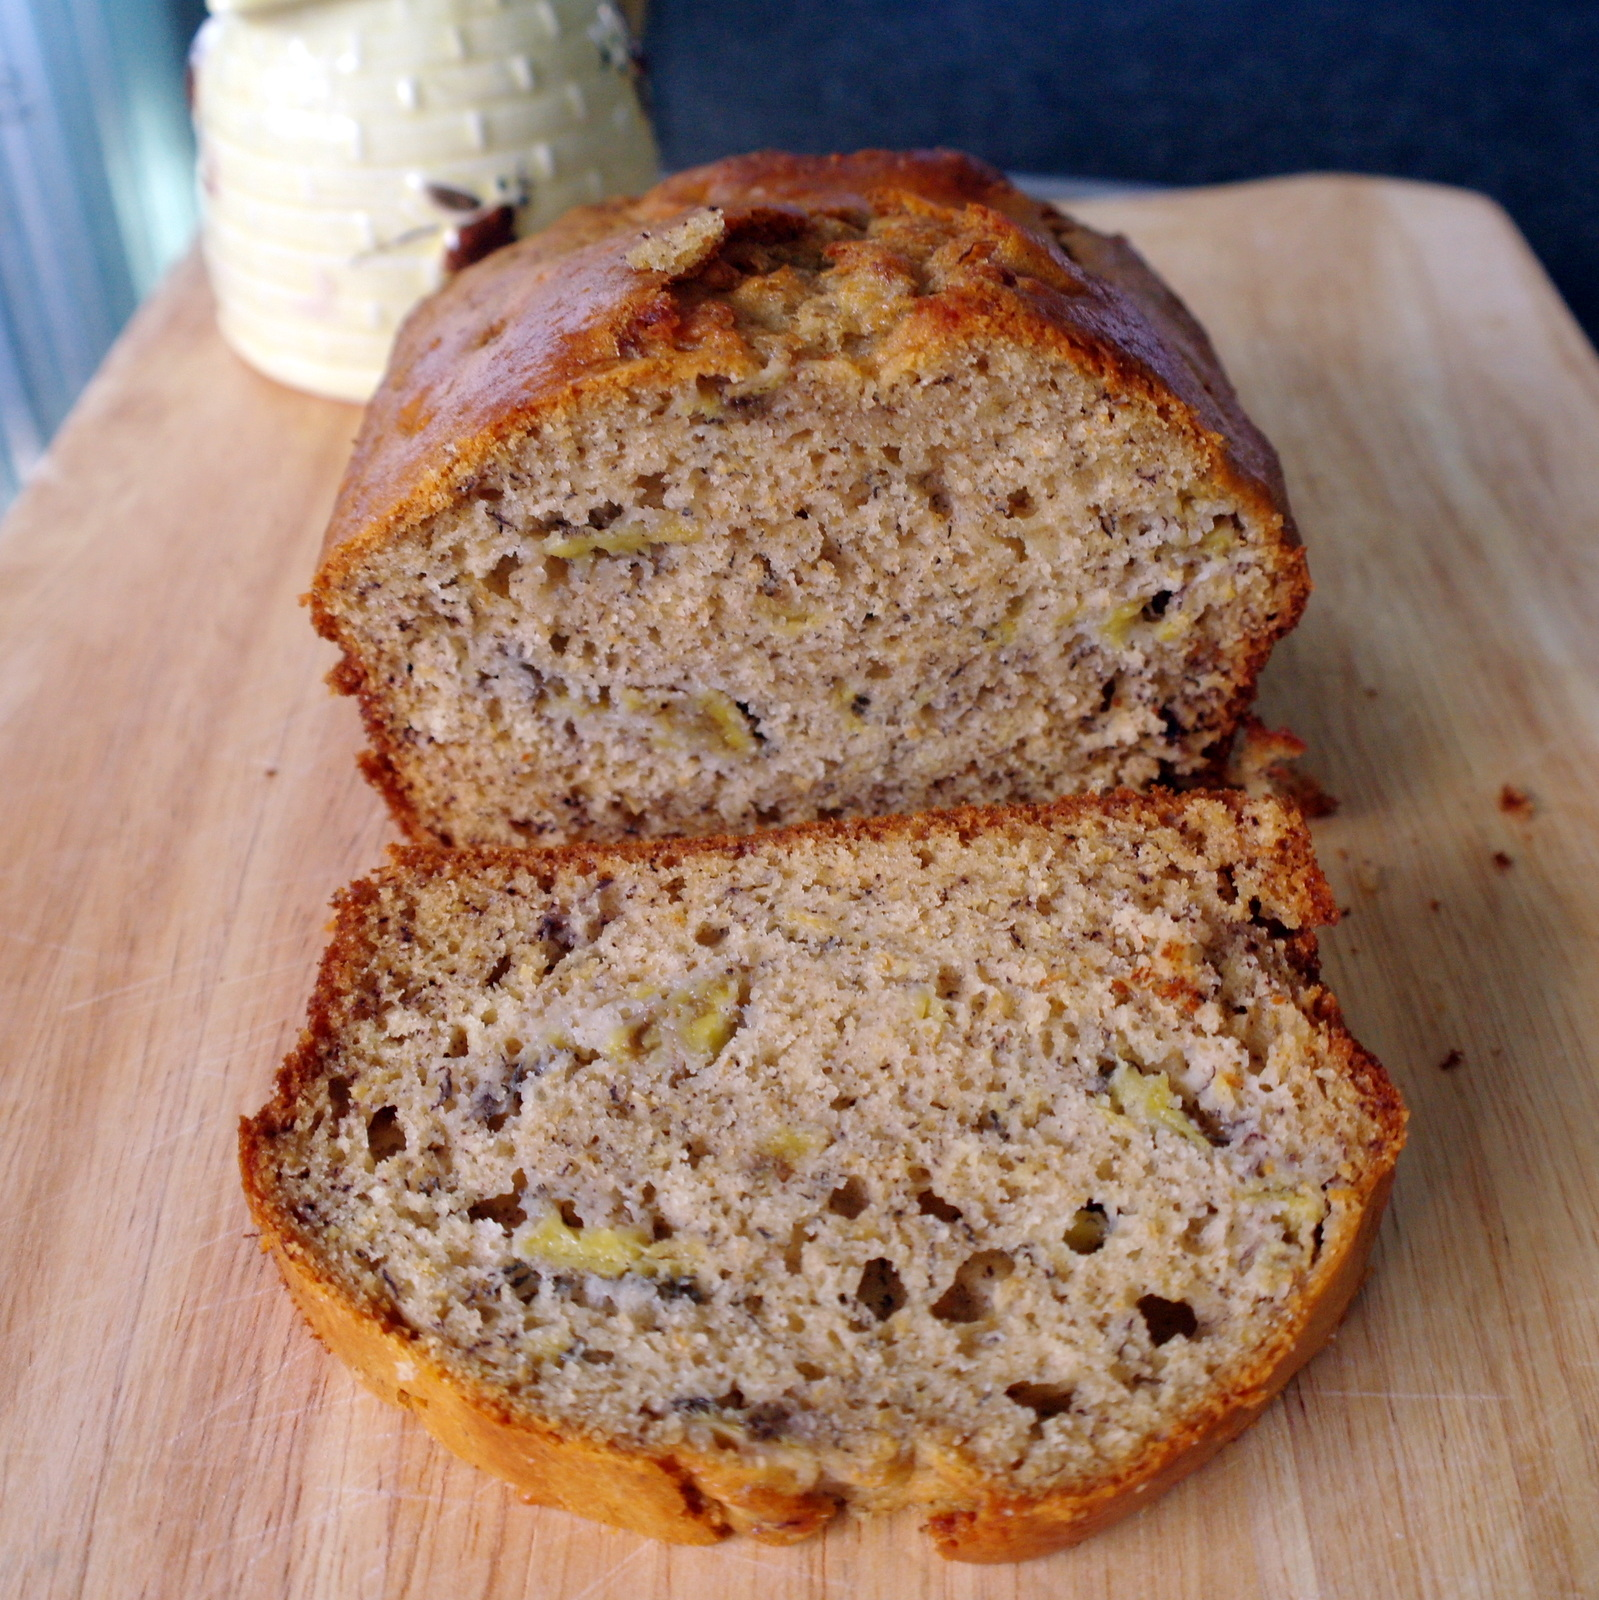 The only banana bread recipe youll ever need huffpost 2013 09 12 09078579g the modern day banana bread forumfinder Image collections